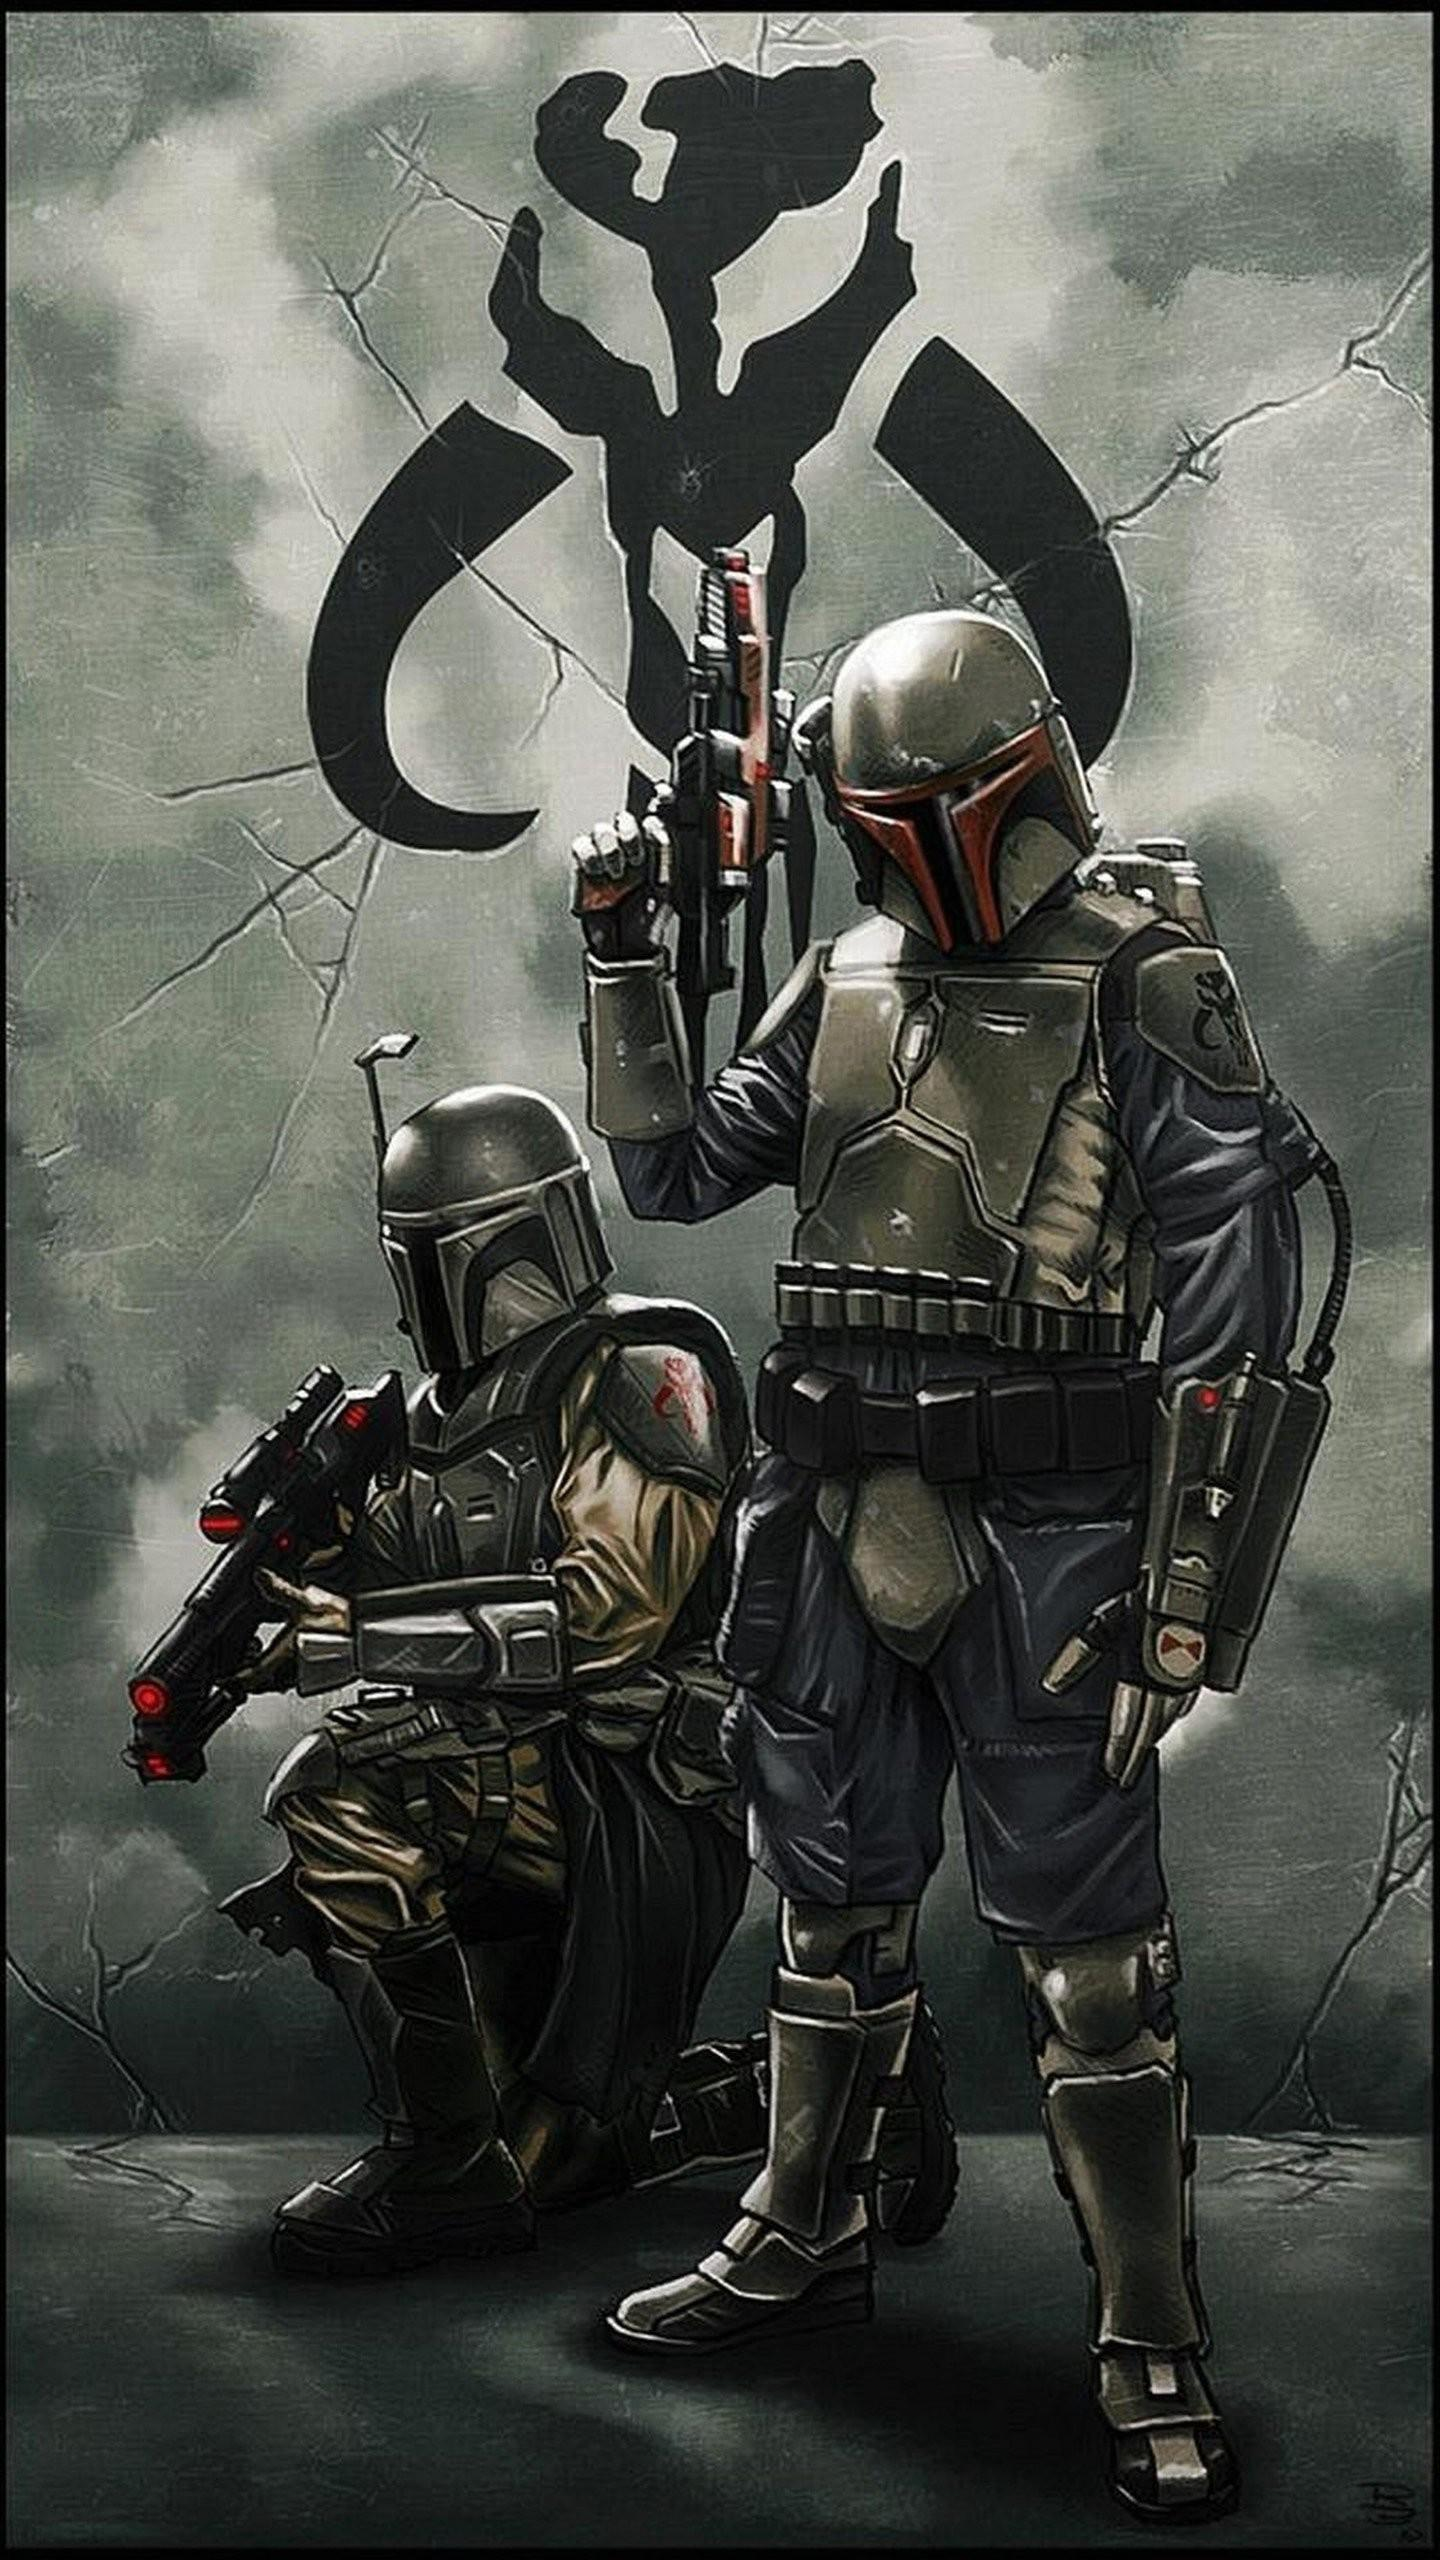 The Mandalorian Star Wars Tv Series Wallpapers Wallpaper